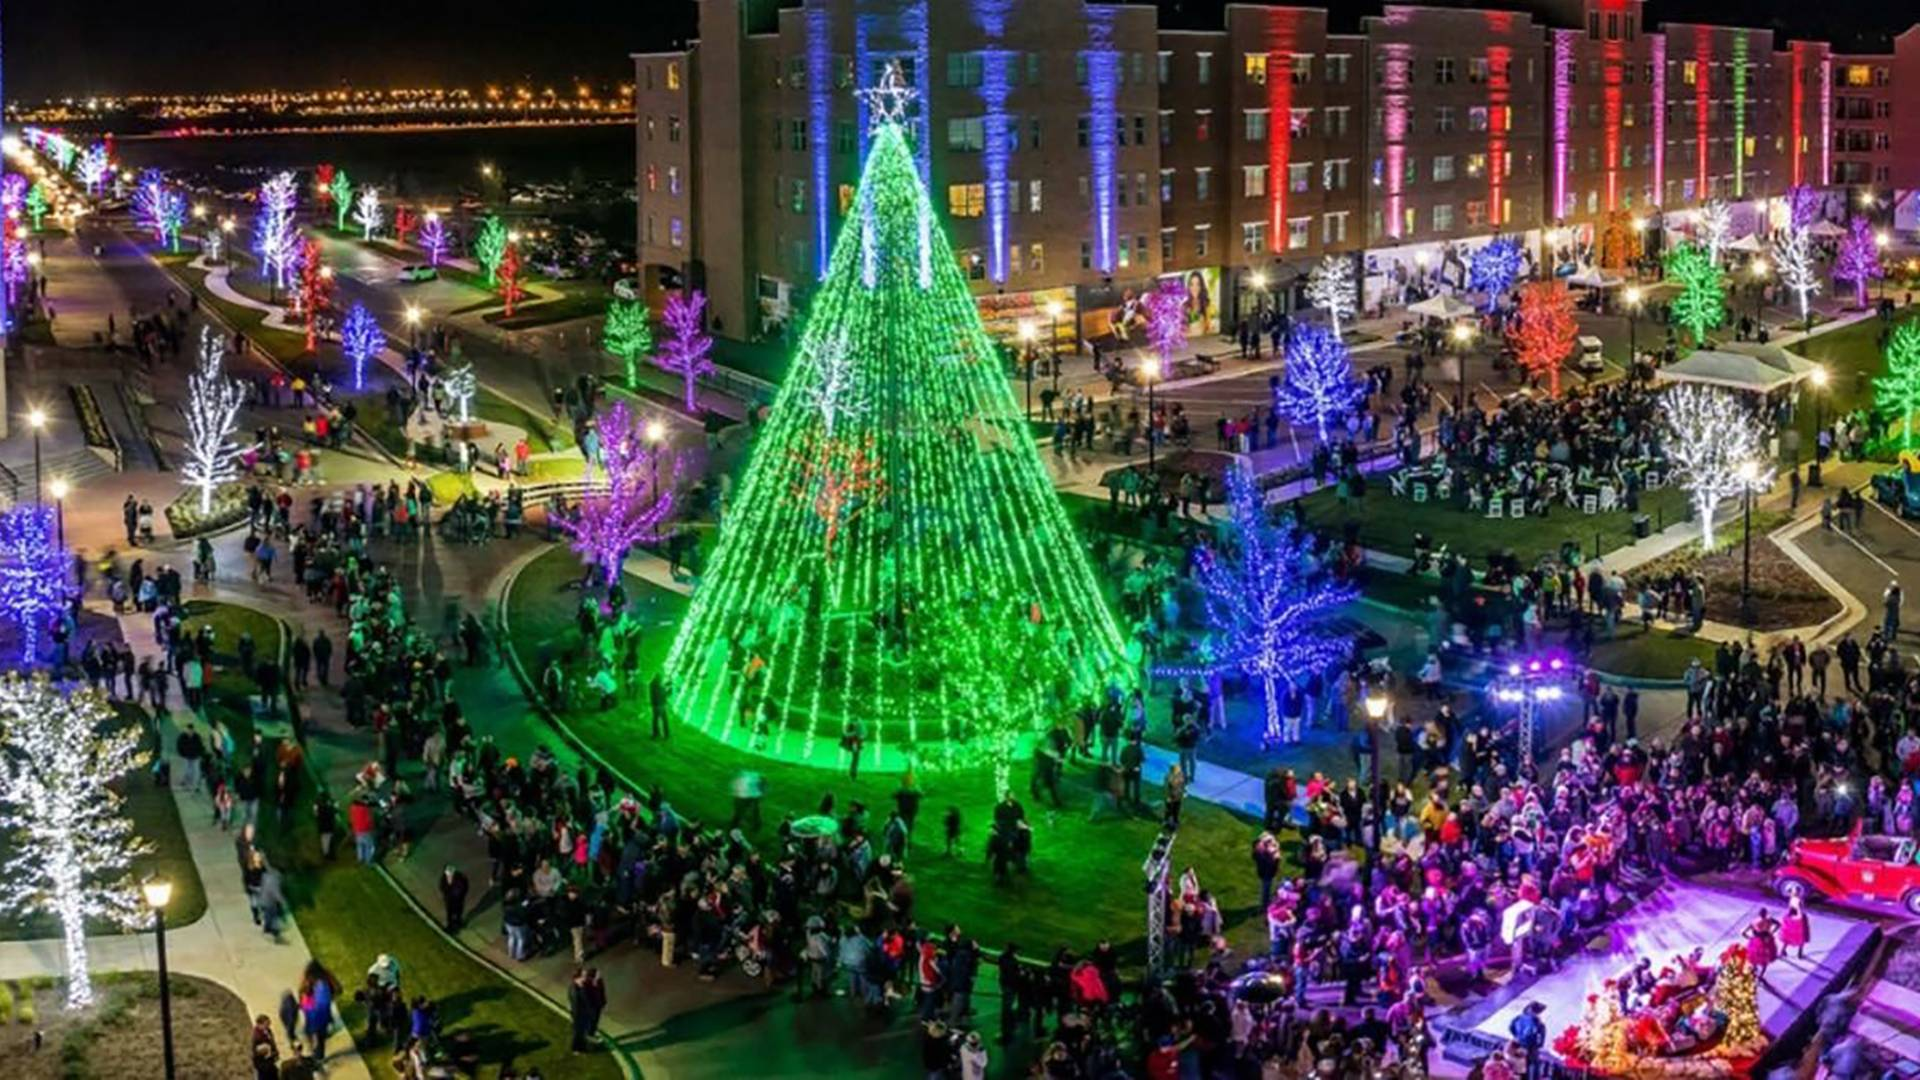 Bishop Hills Amarillo Tx Christmas Lights 2020 Play Here's Activity Roundup for Dec. 21 to 28, including holiday